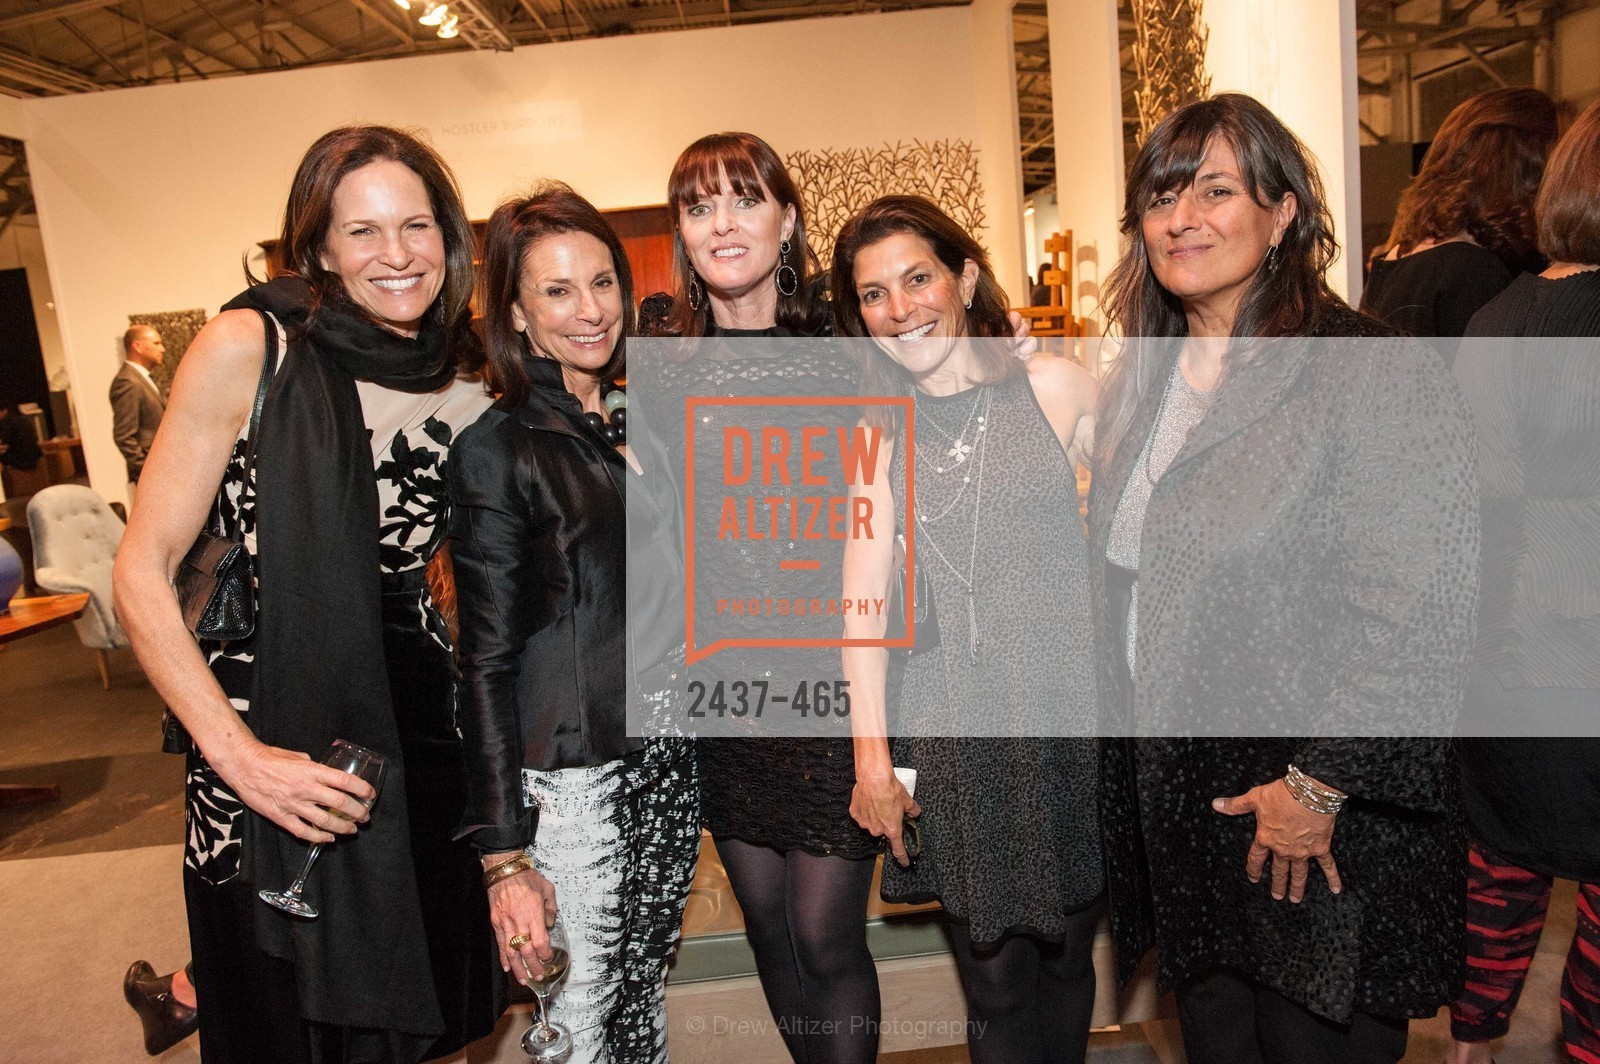 Randi Fisher, Linda Howell, Allison Speer, Susan Swig, FOG Design + Art Preview Gala, US. US, January 16th, 2014,Drew Altizer, Drew Altizer Photography, full-service agency, private events, San Francisco photographer, photographer california